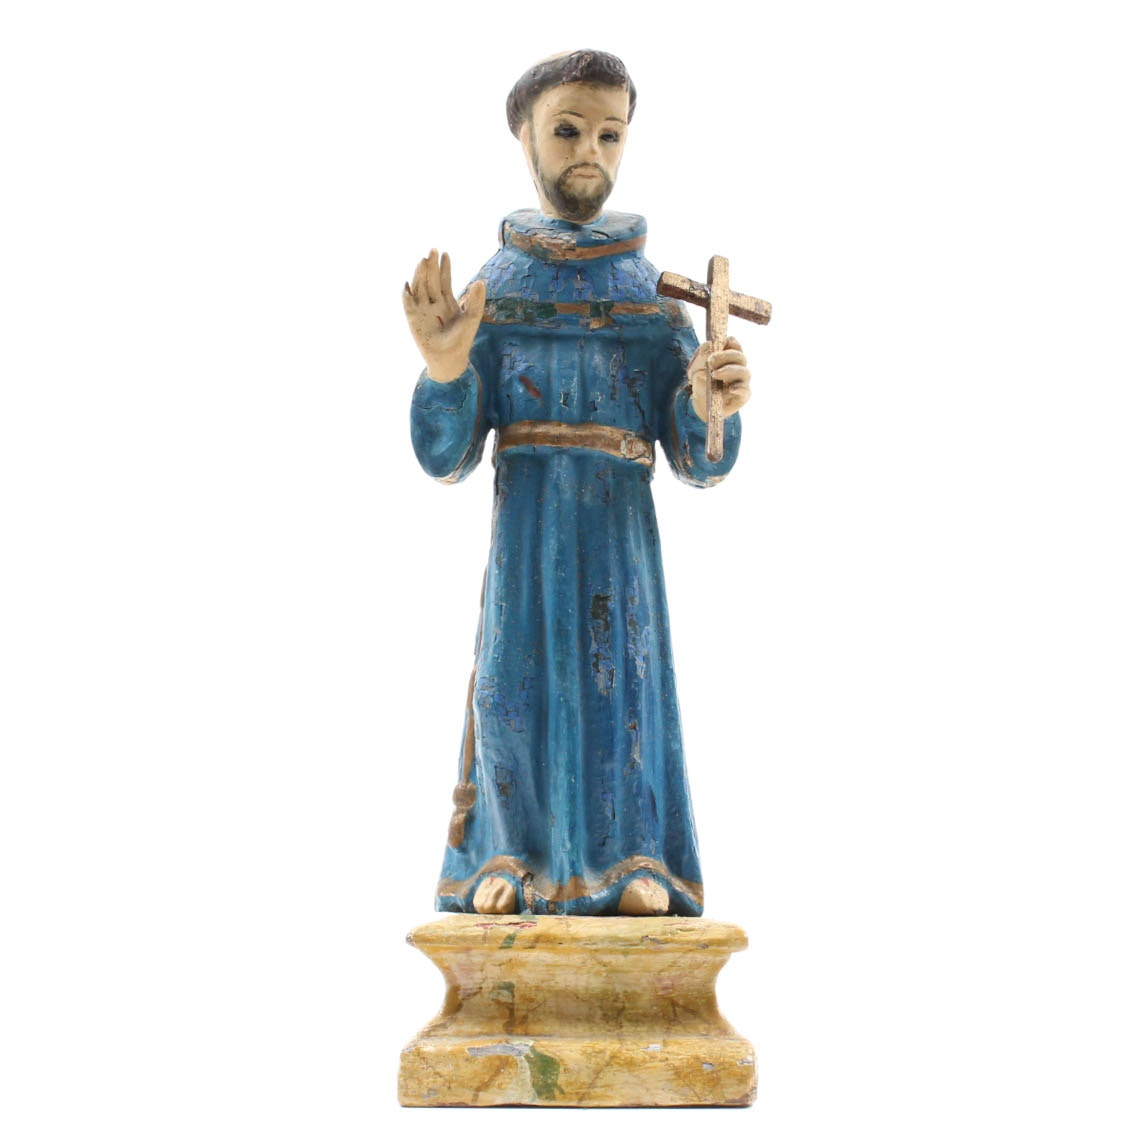 Antique Hand-Painted Saint Francis of Assisi Carving